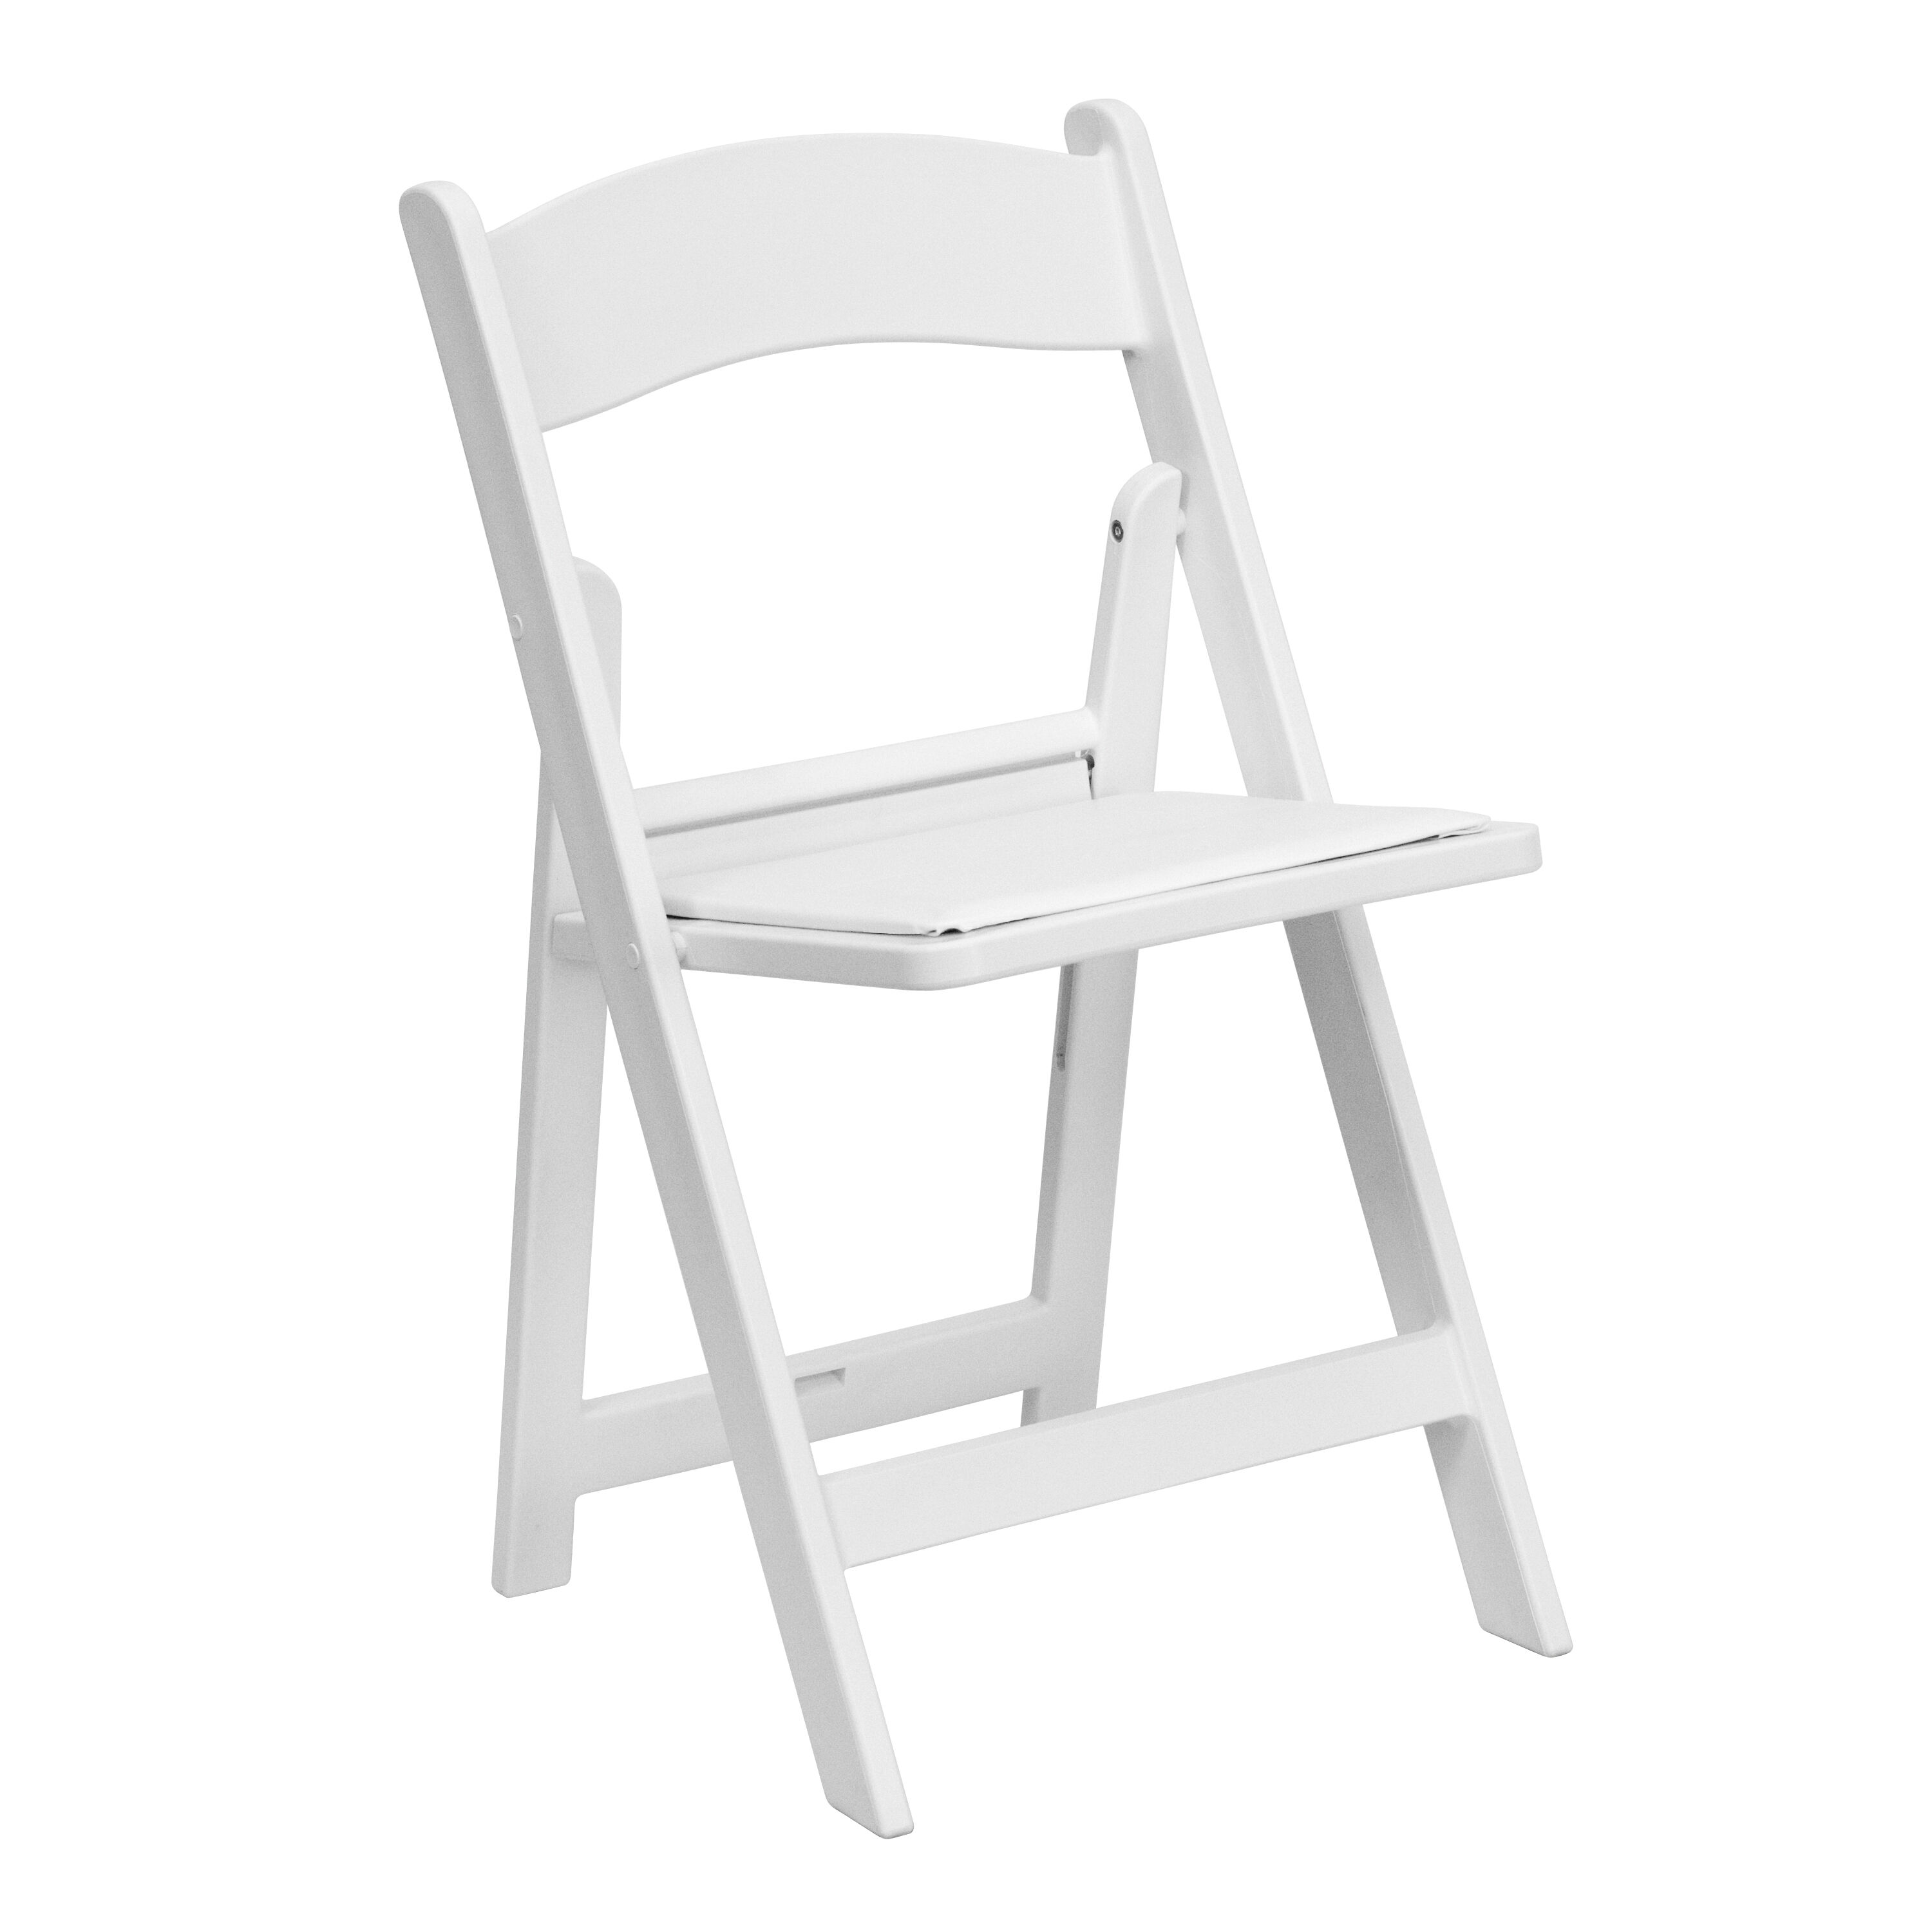 Genial Folding Chairs 4 Less